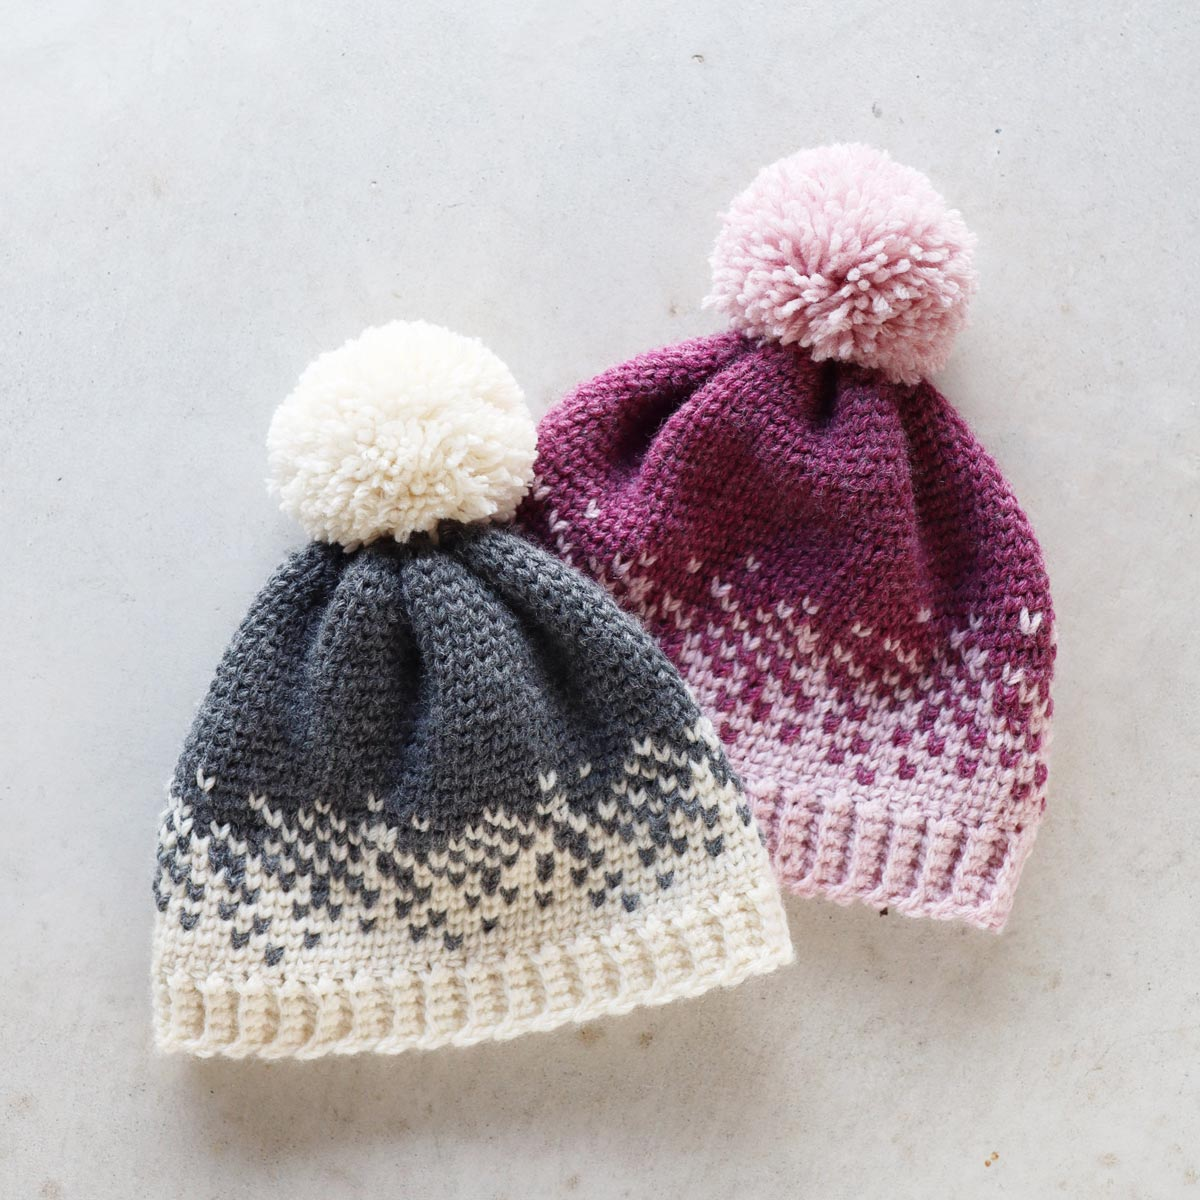 flat lay of fair isle crochet beanies with ribbed brim and pom poms in grey and white and light pink and magenta